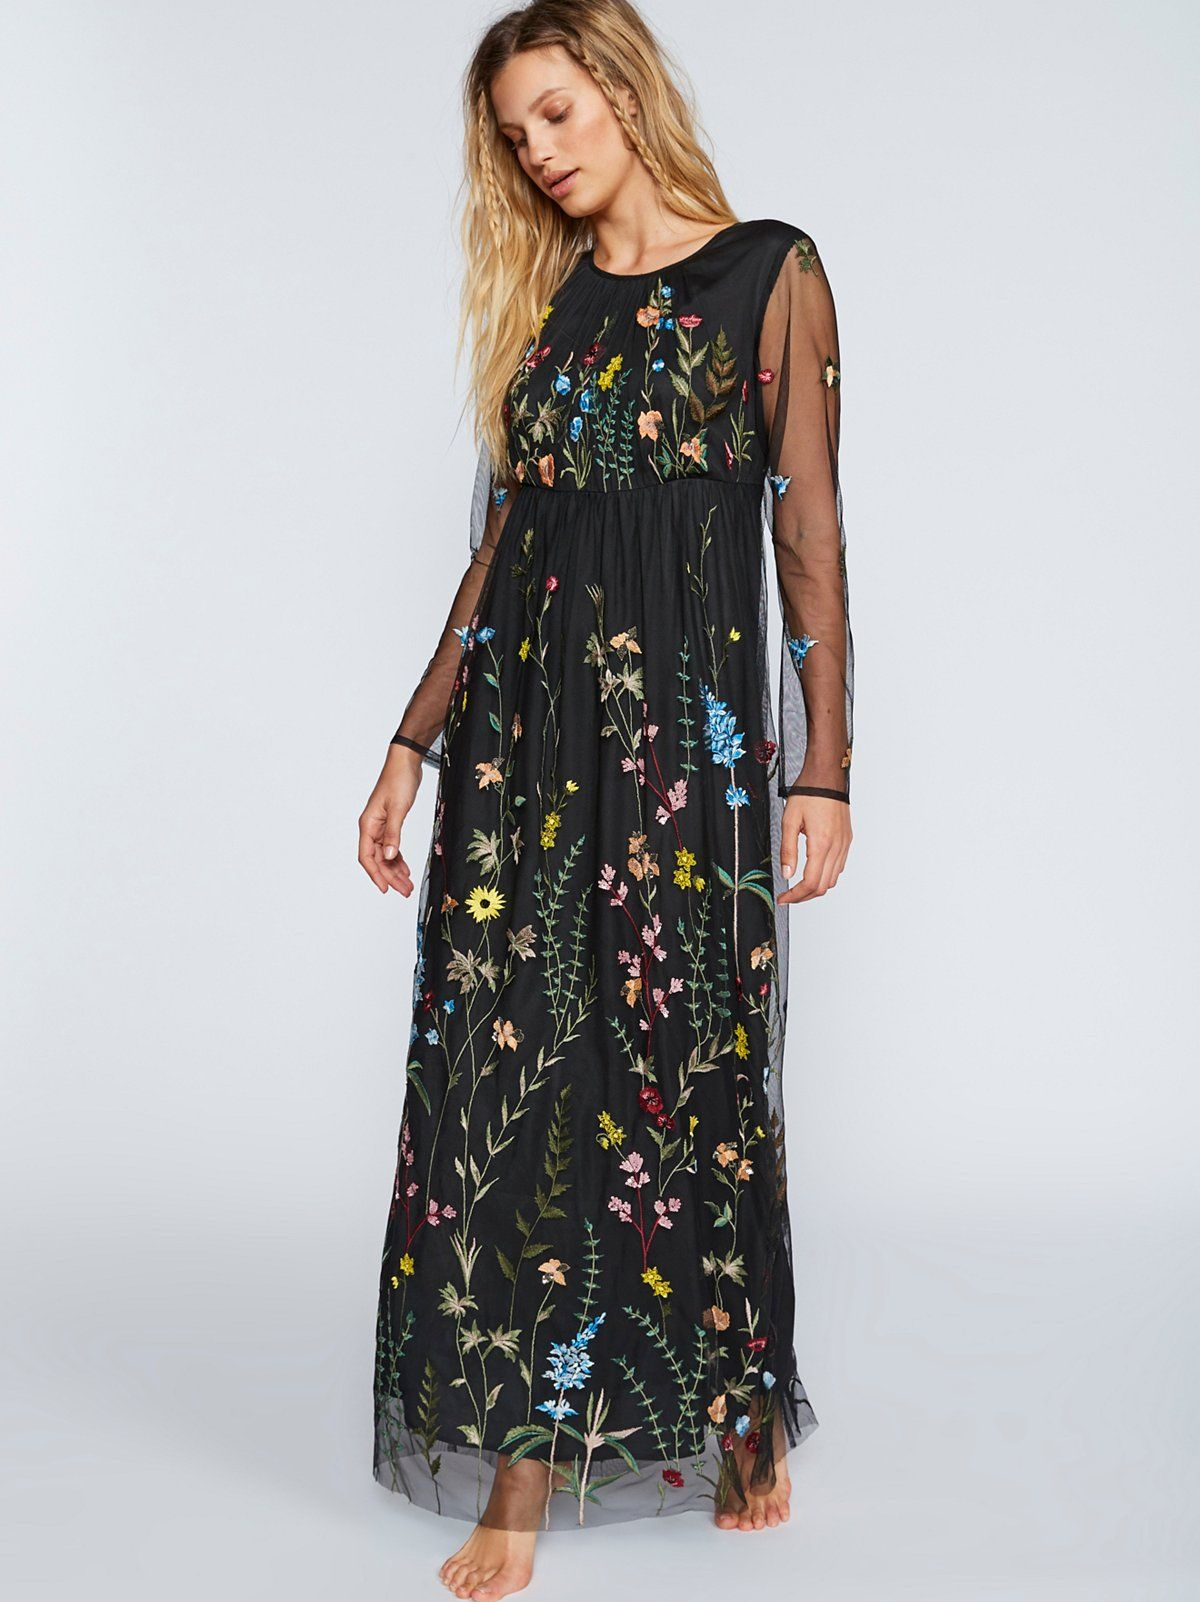 Yasmin Embroidered Maxi Dress Gorgeous Maxi Dress Featuring A Mesh Overlay Embellished With F Maxi Dress Long Sleeve Embroidered Dress Embroidered Maxi Dress [ 1602 x 1200 Pixel ]